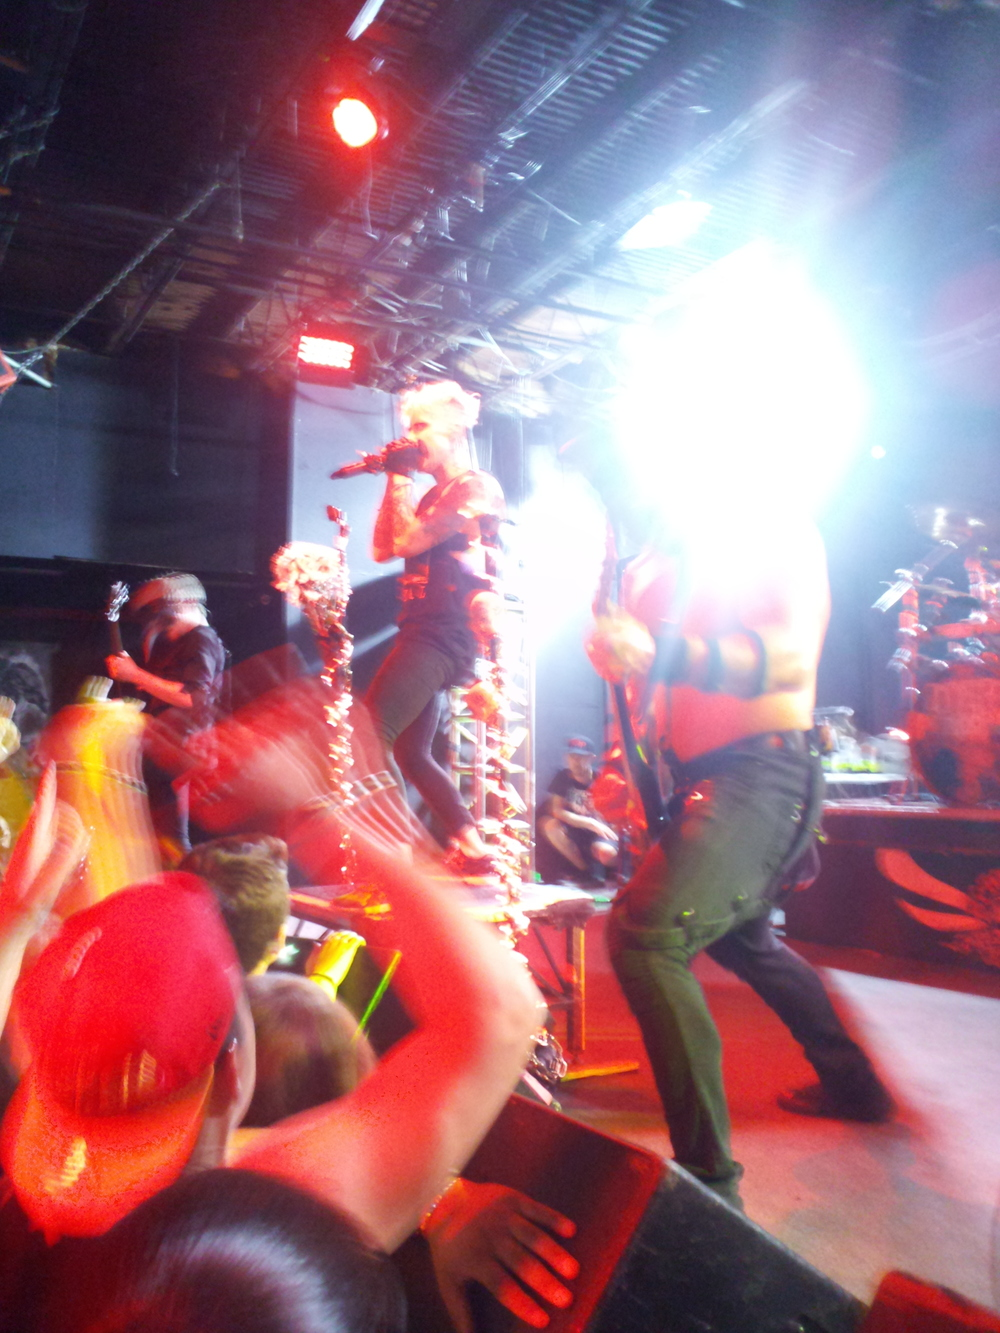 Frontwoman Otep Shamaya is five-foot-nothing but had an amazing stage presence and riled everyone up. Her energy was clichedly-electrifying.